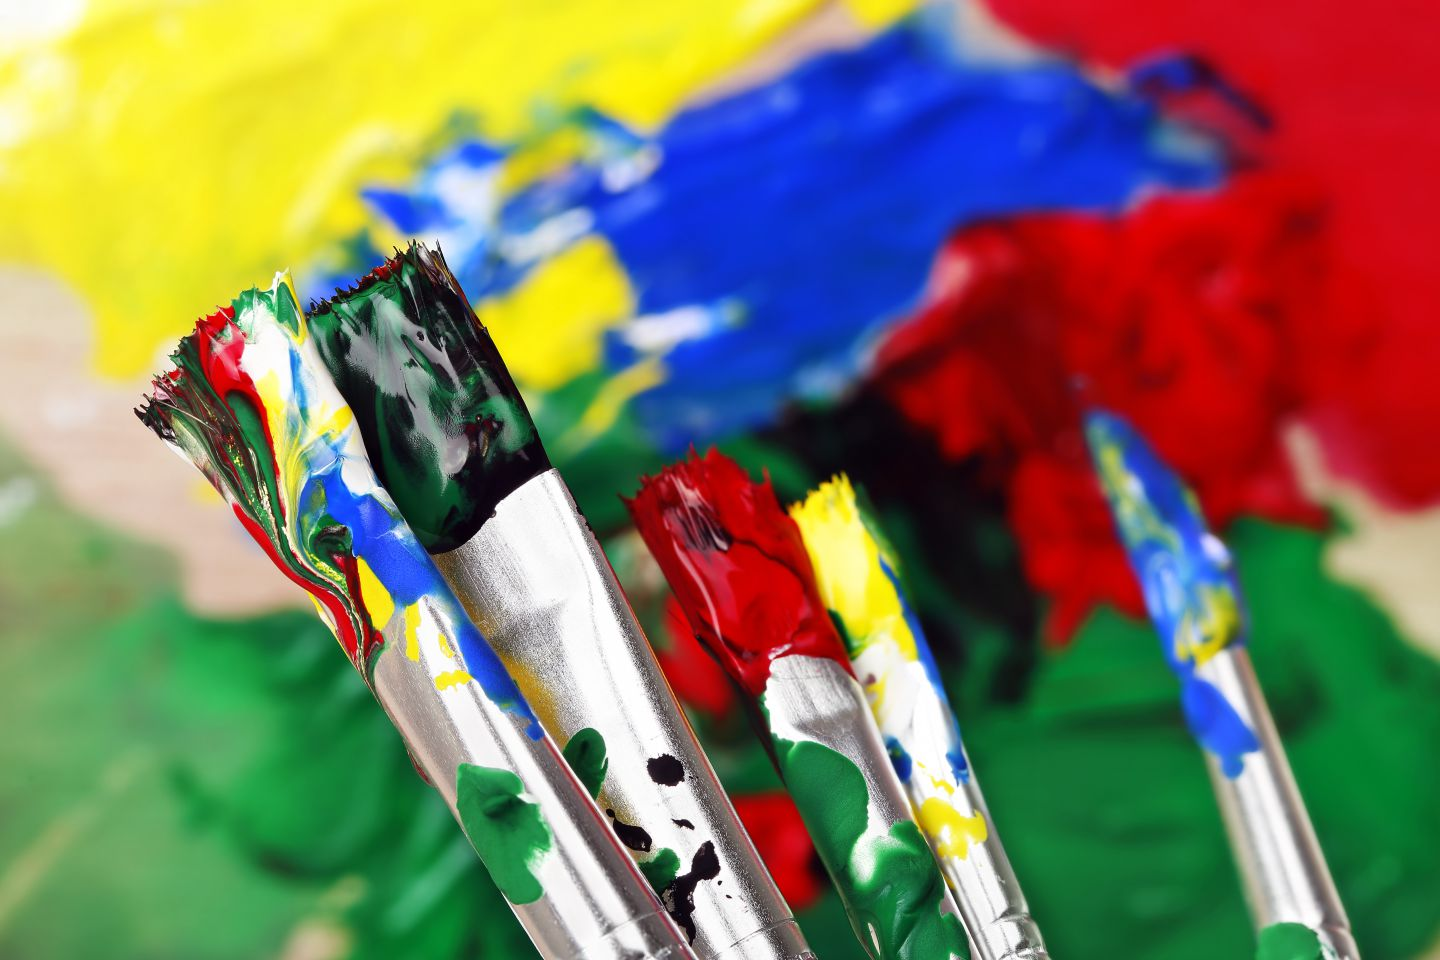 paint brushes with paint in front of colorful background